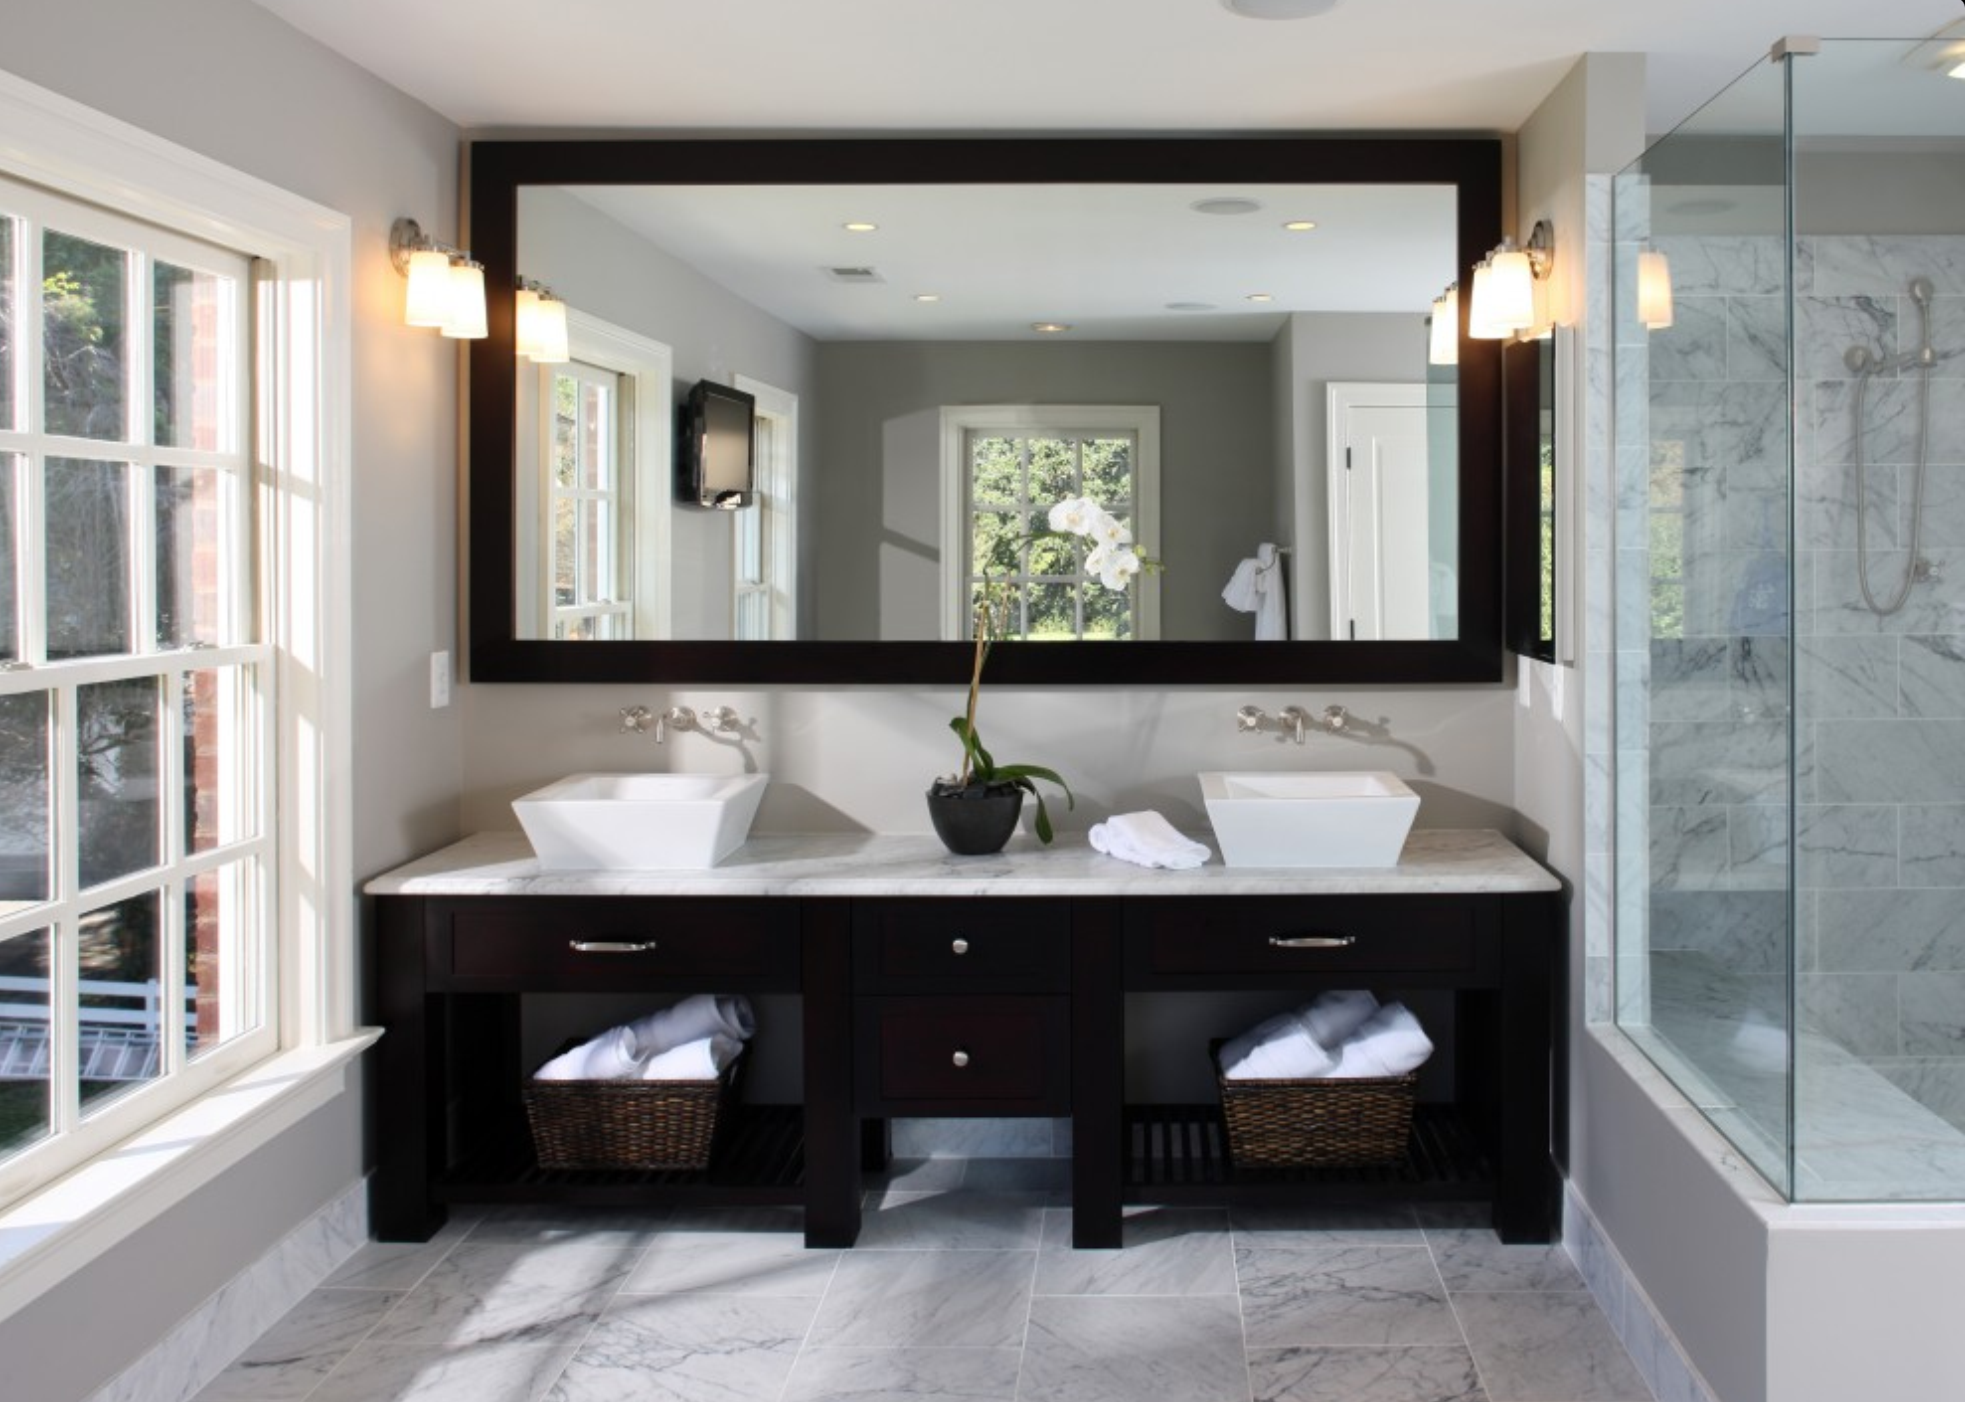 2015 2016 bathroom remodel trends homeadvisor. Black Bedroom Furniture Sets. Home Design Ideas